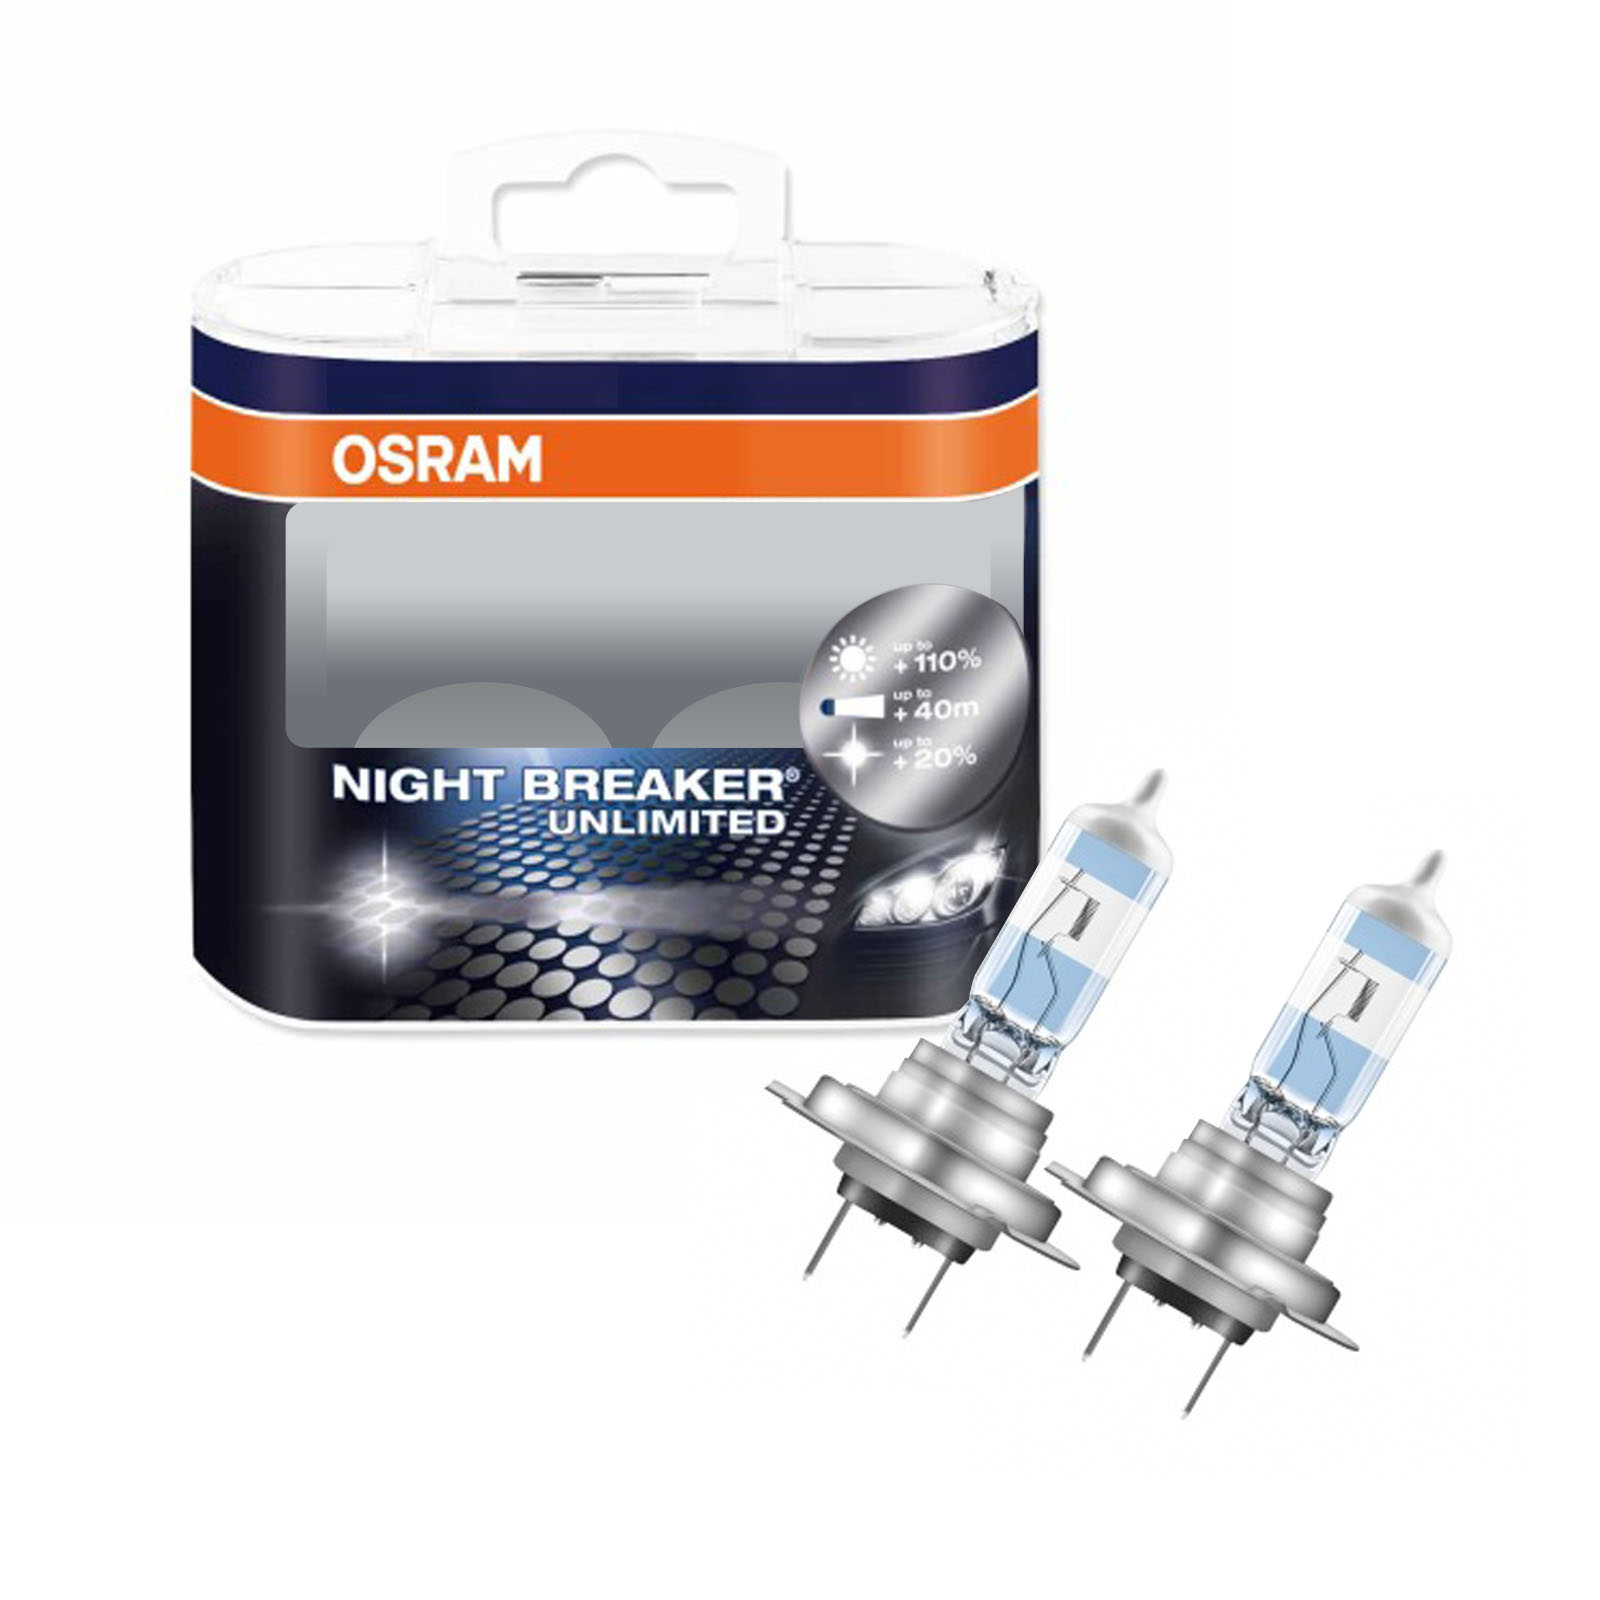 2x audi a3 8p genuine osram night breaker unlimited high beam headlight bulbs ebay. Black Bedroom Furniture Sets. Home Design Ideas